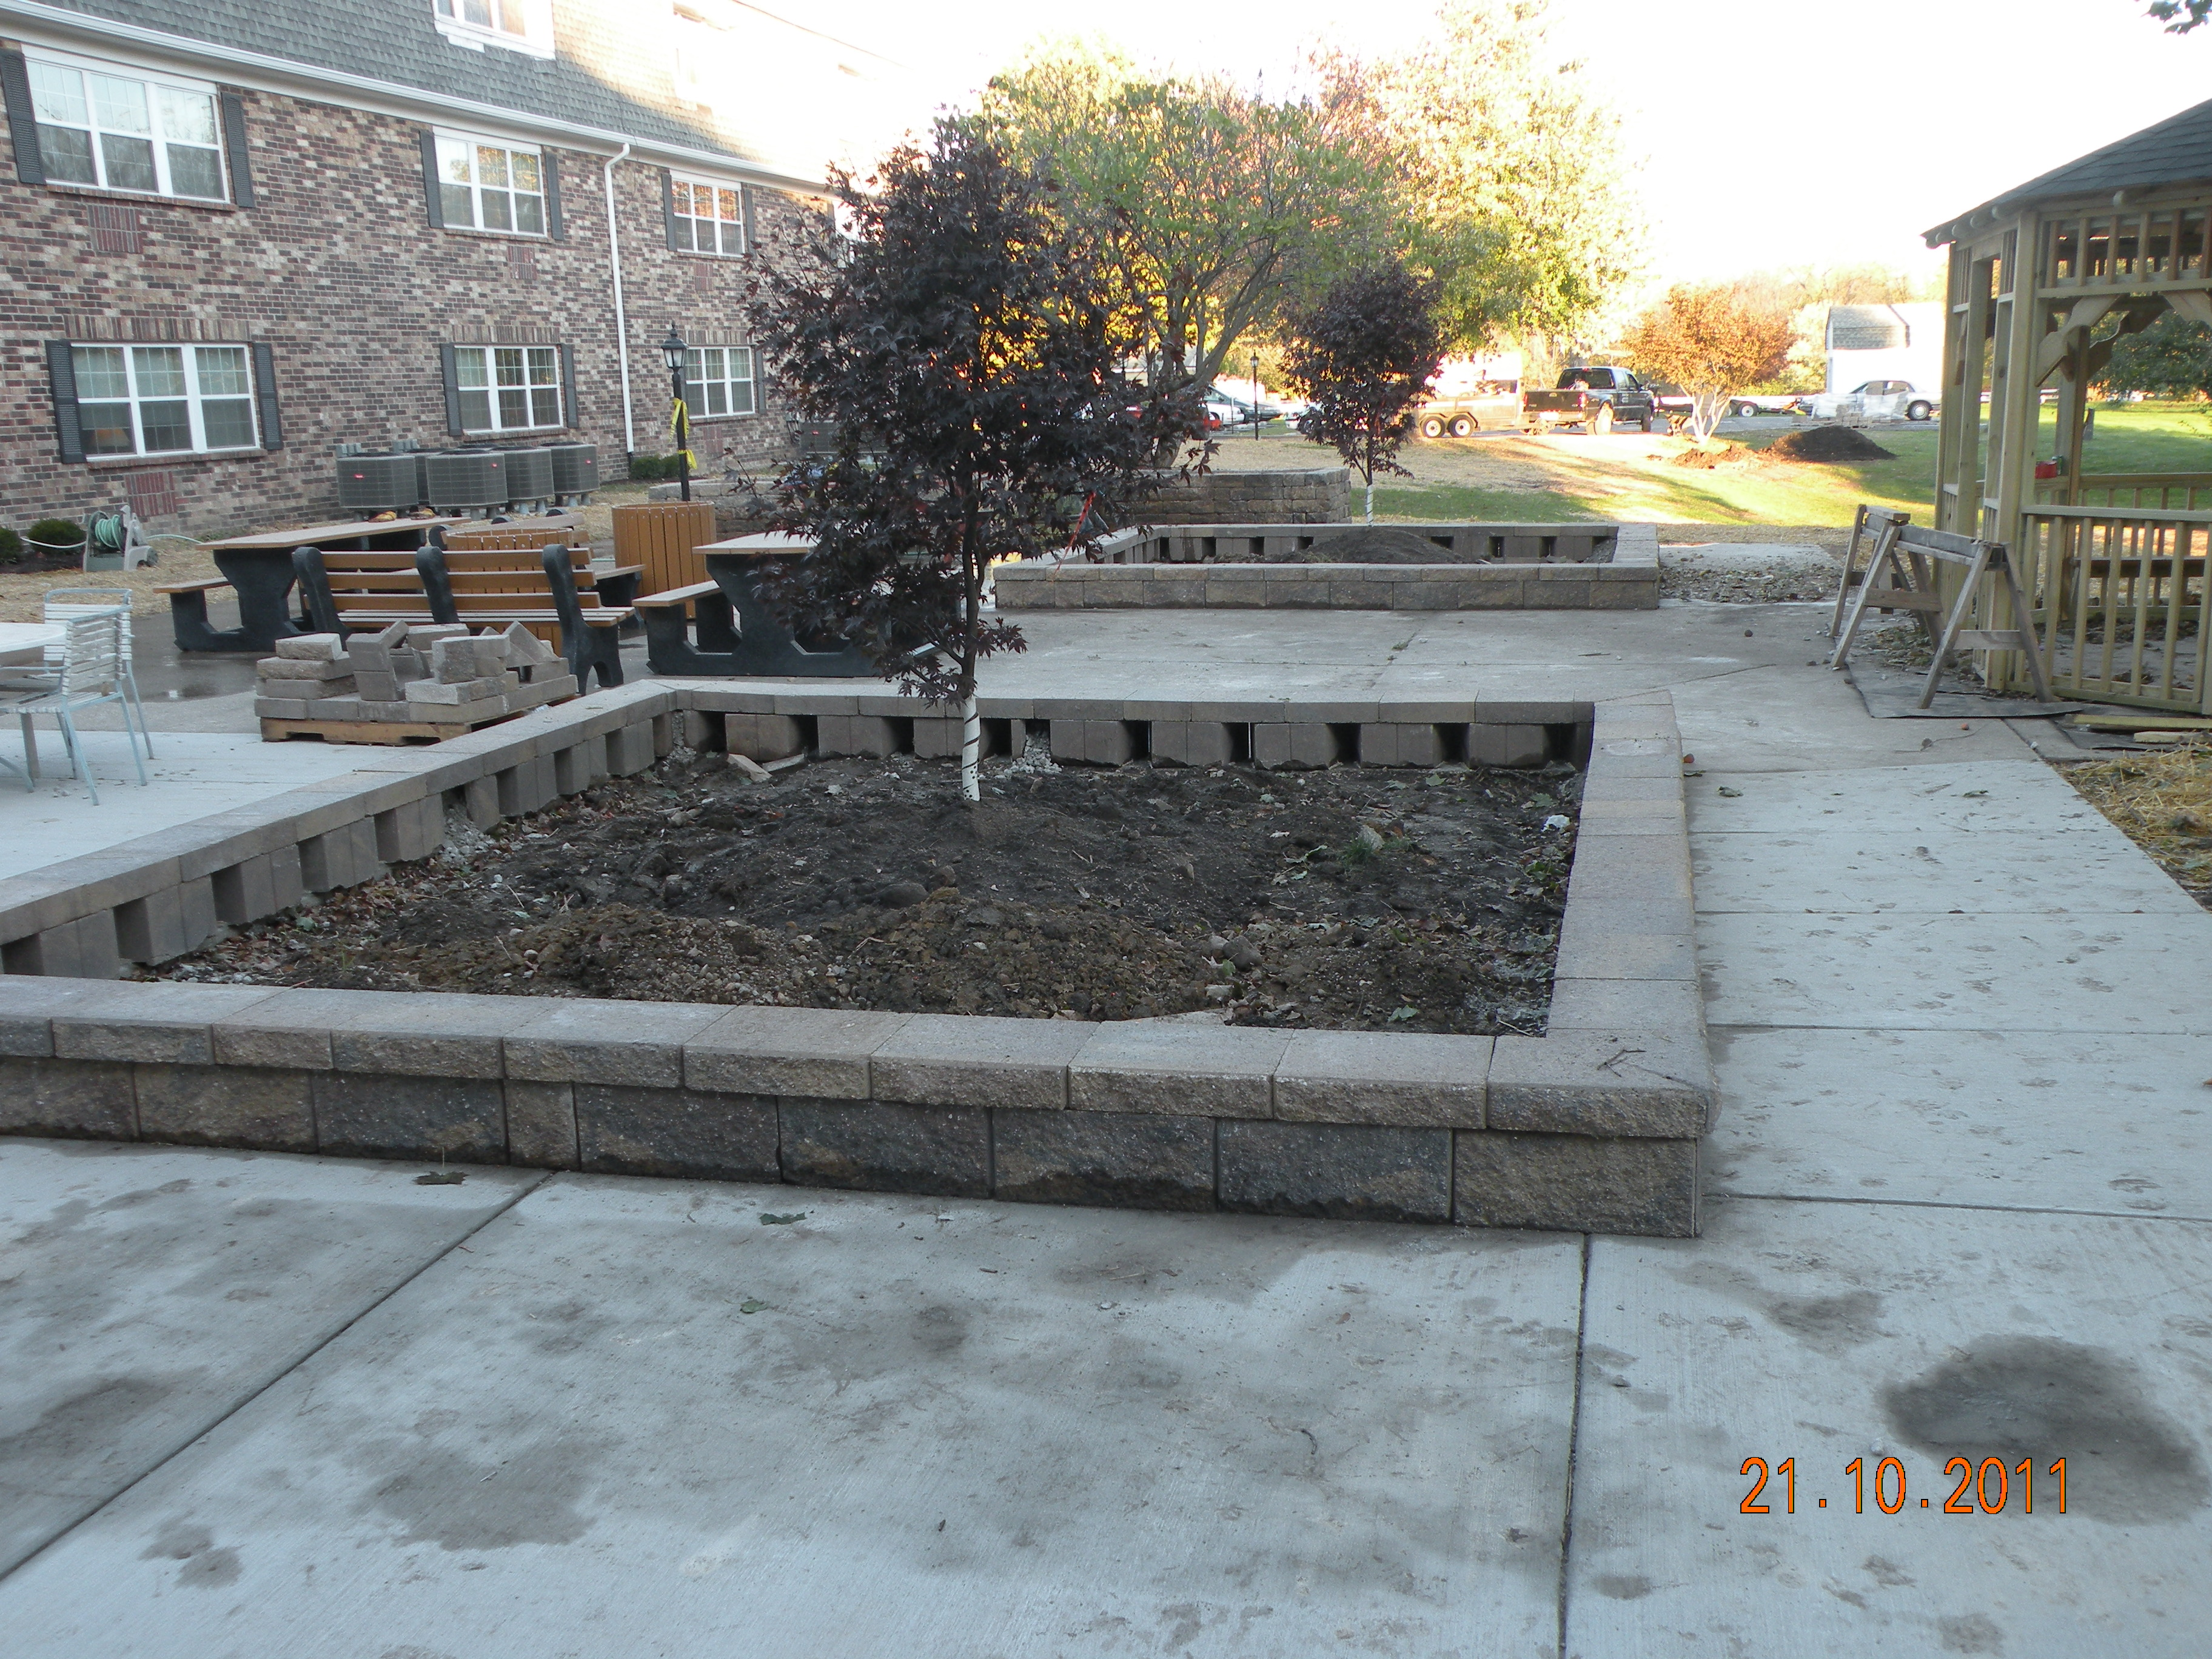 Raised Garden Beds and Benches - Burnett Manor Rockville 2011